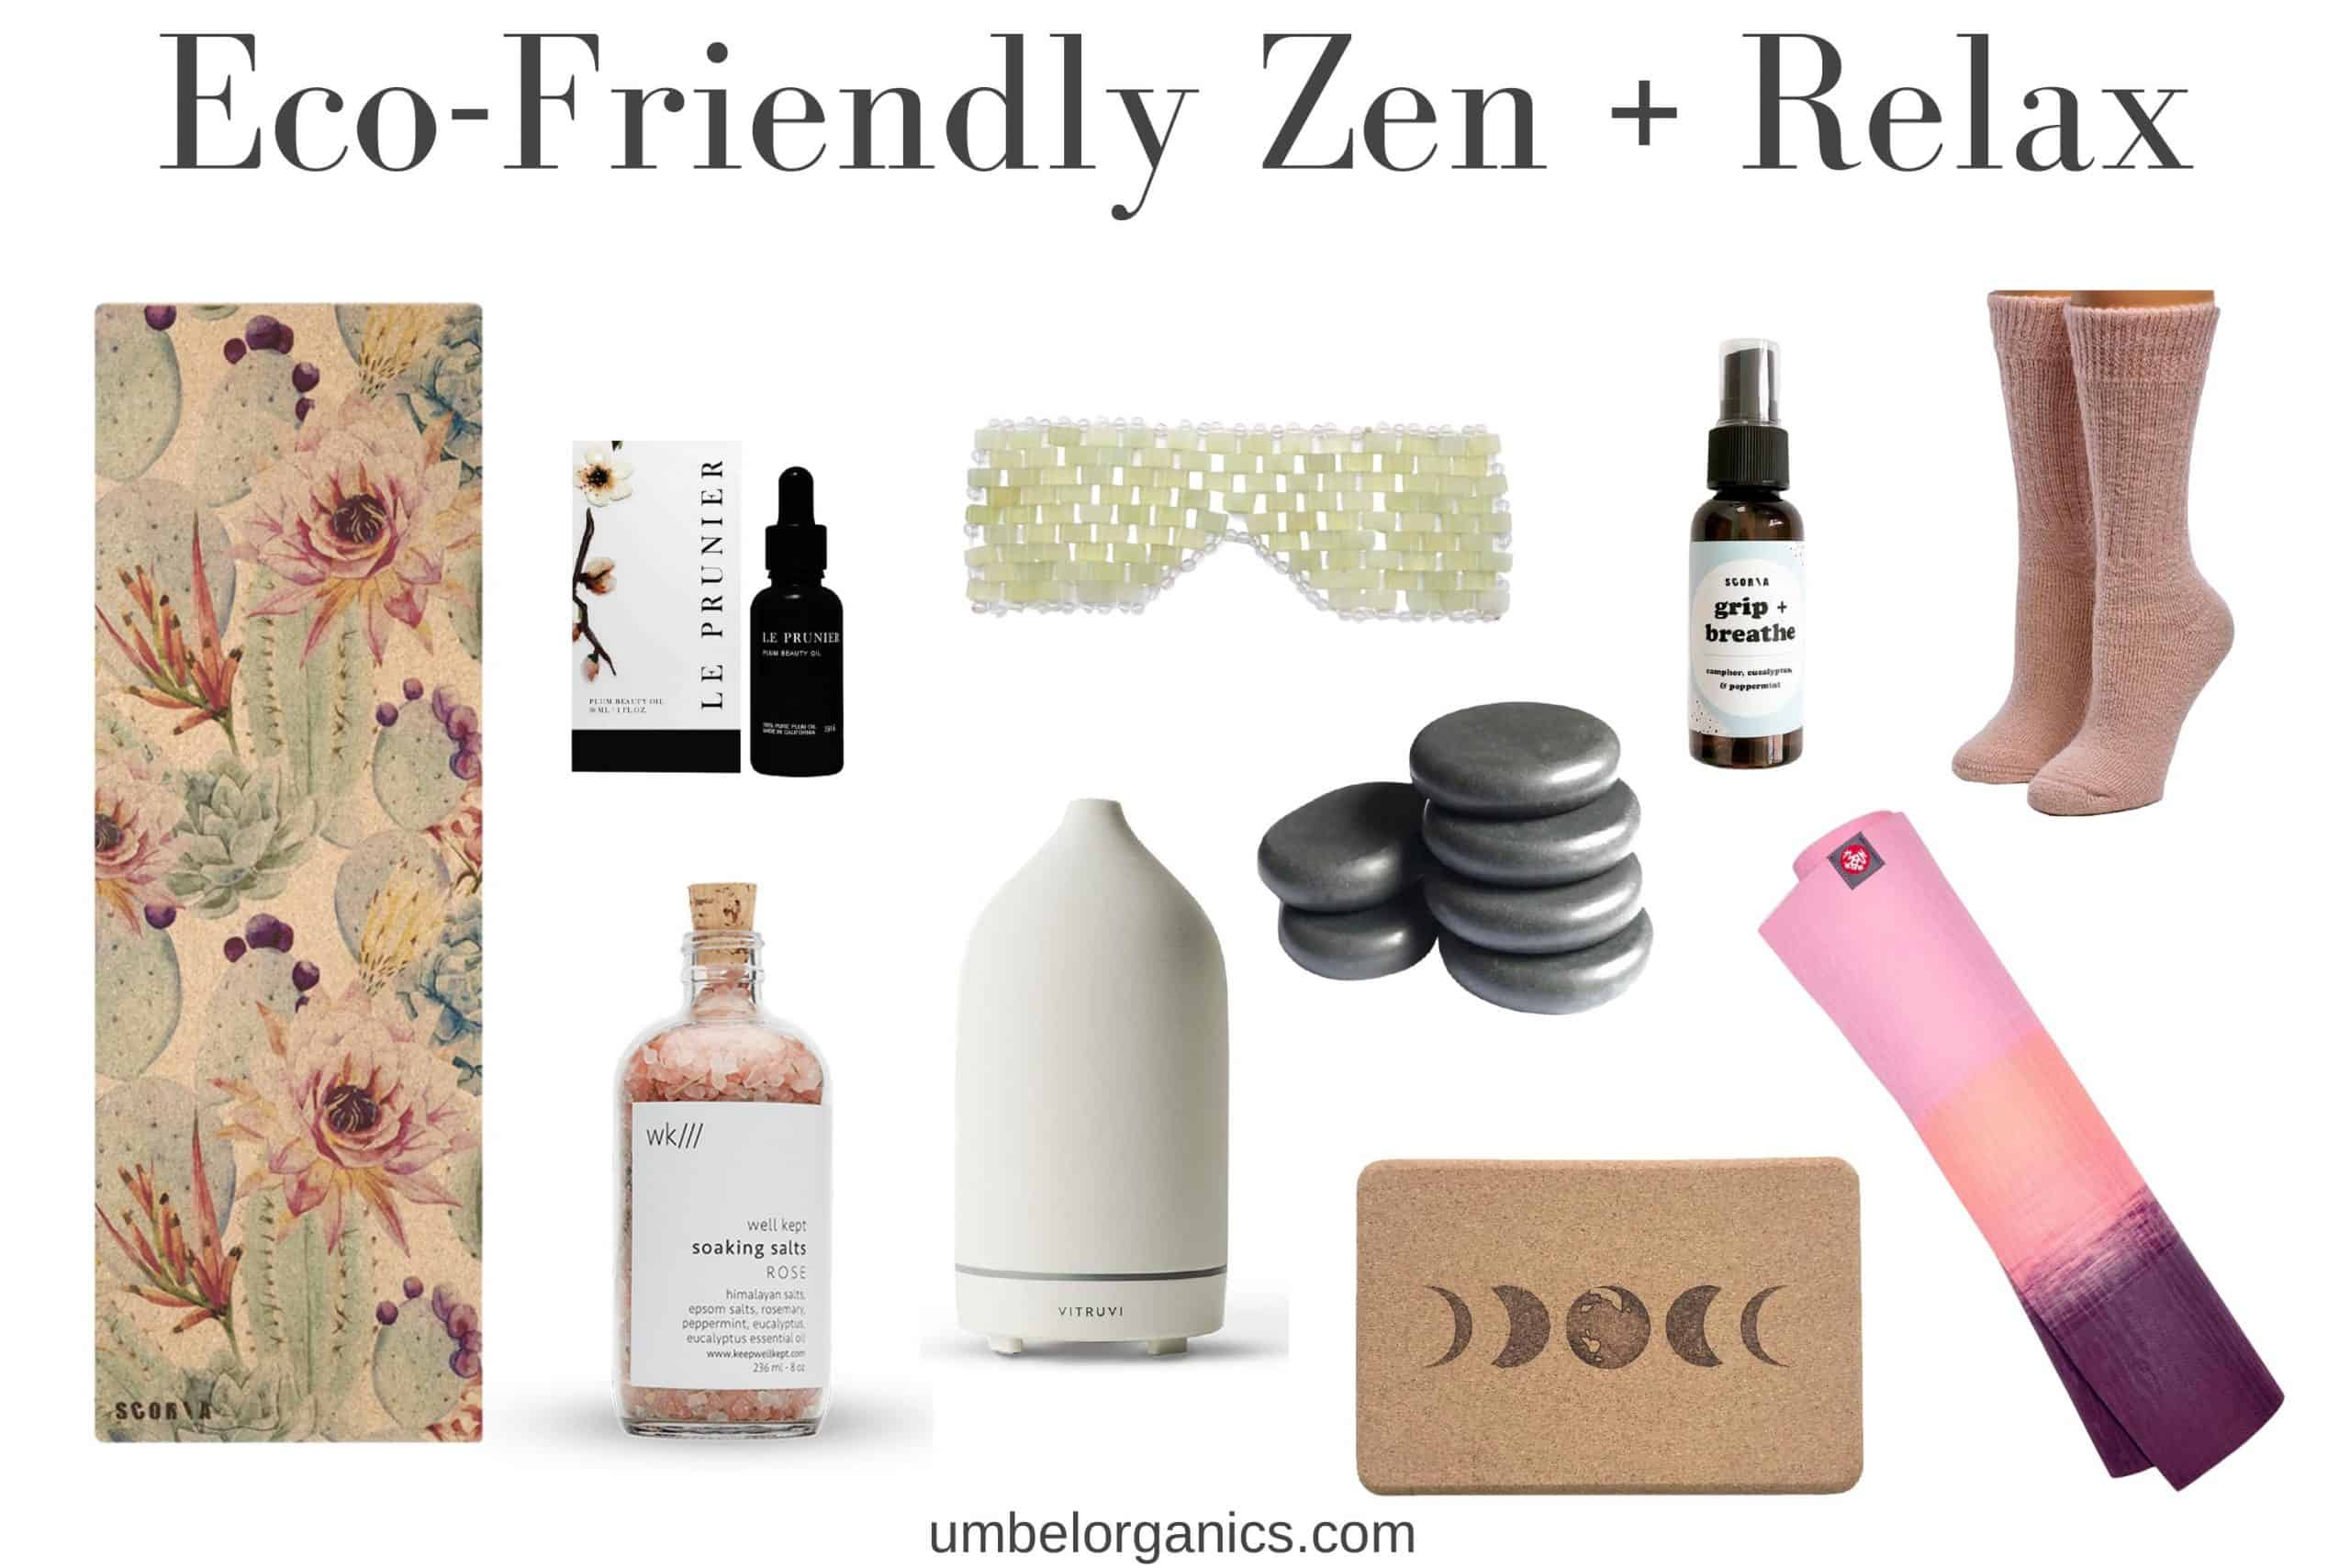 Eco-Friendly Zen + Relax Gifts